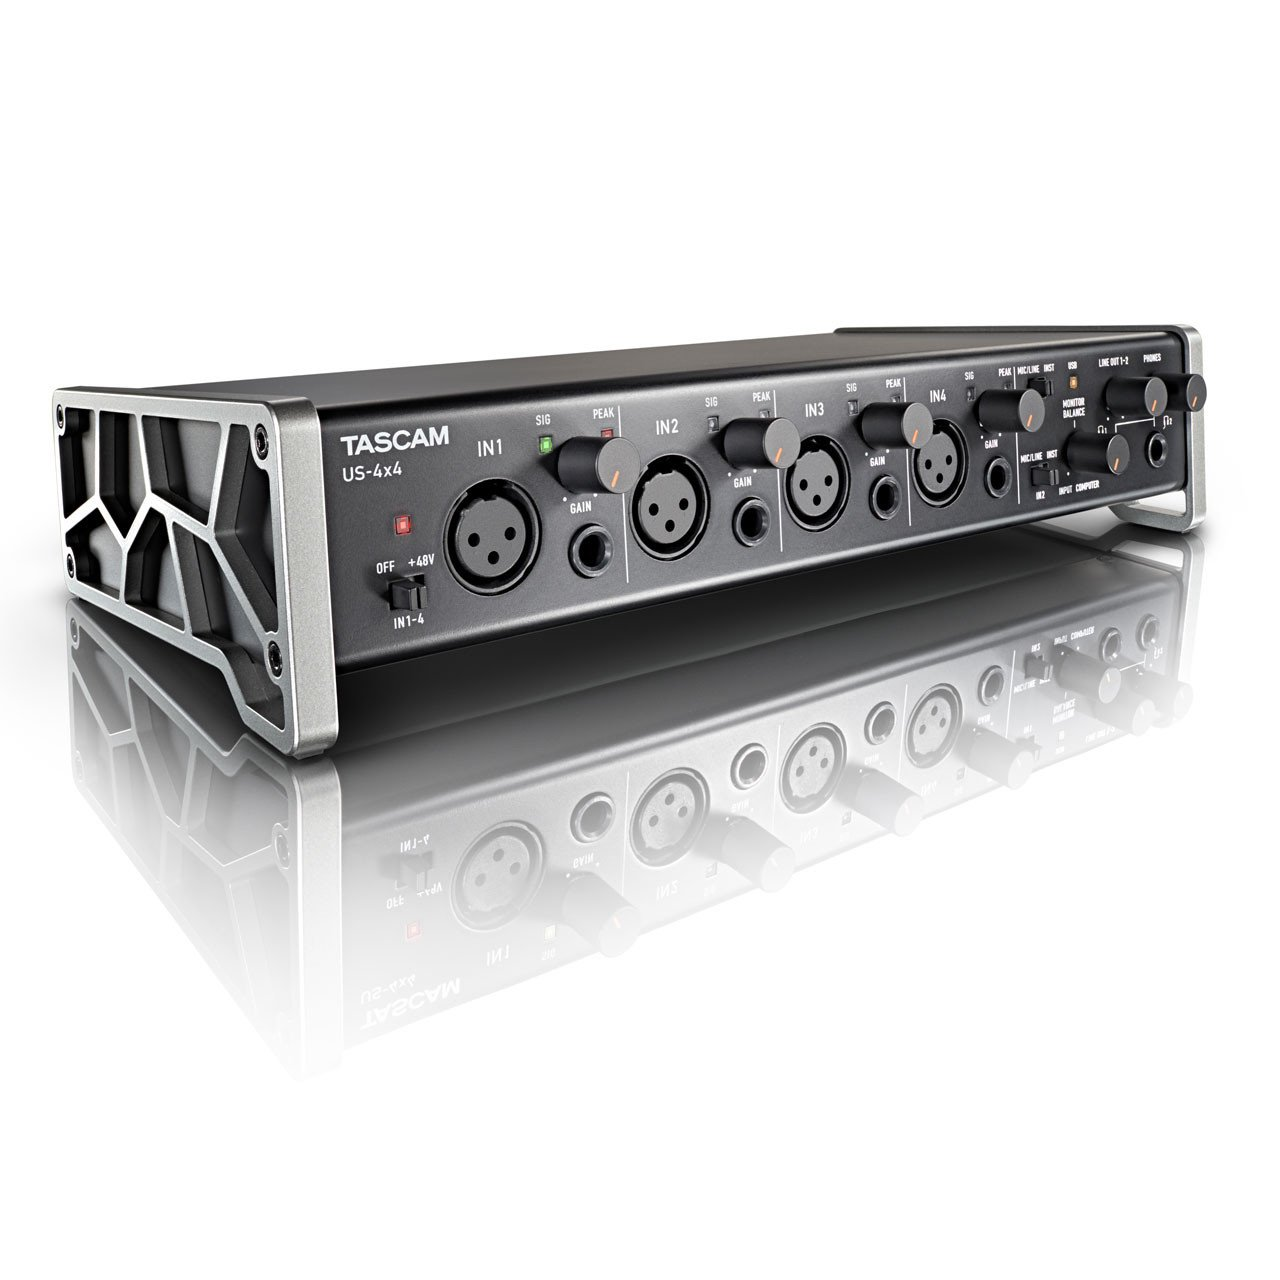 USB Audio Interfaces - TASCAM US-4x4 USB Interface With HDDA Mic Preamps & IOS Compatibility